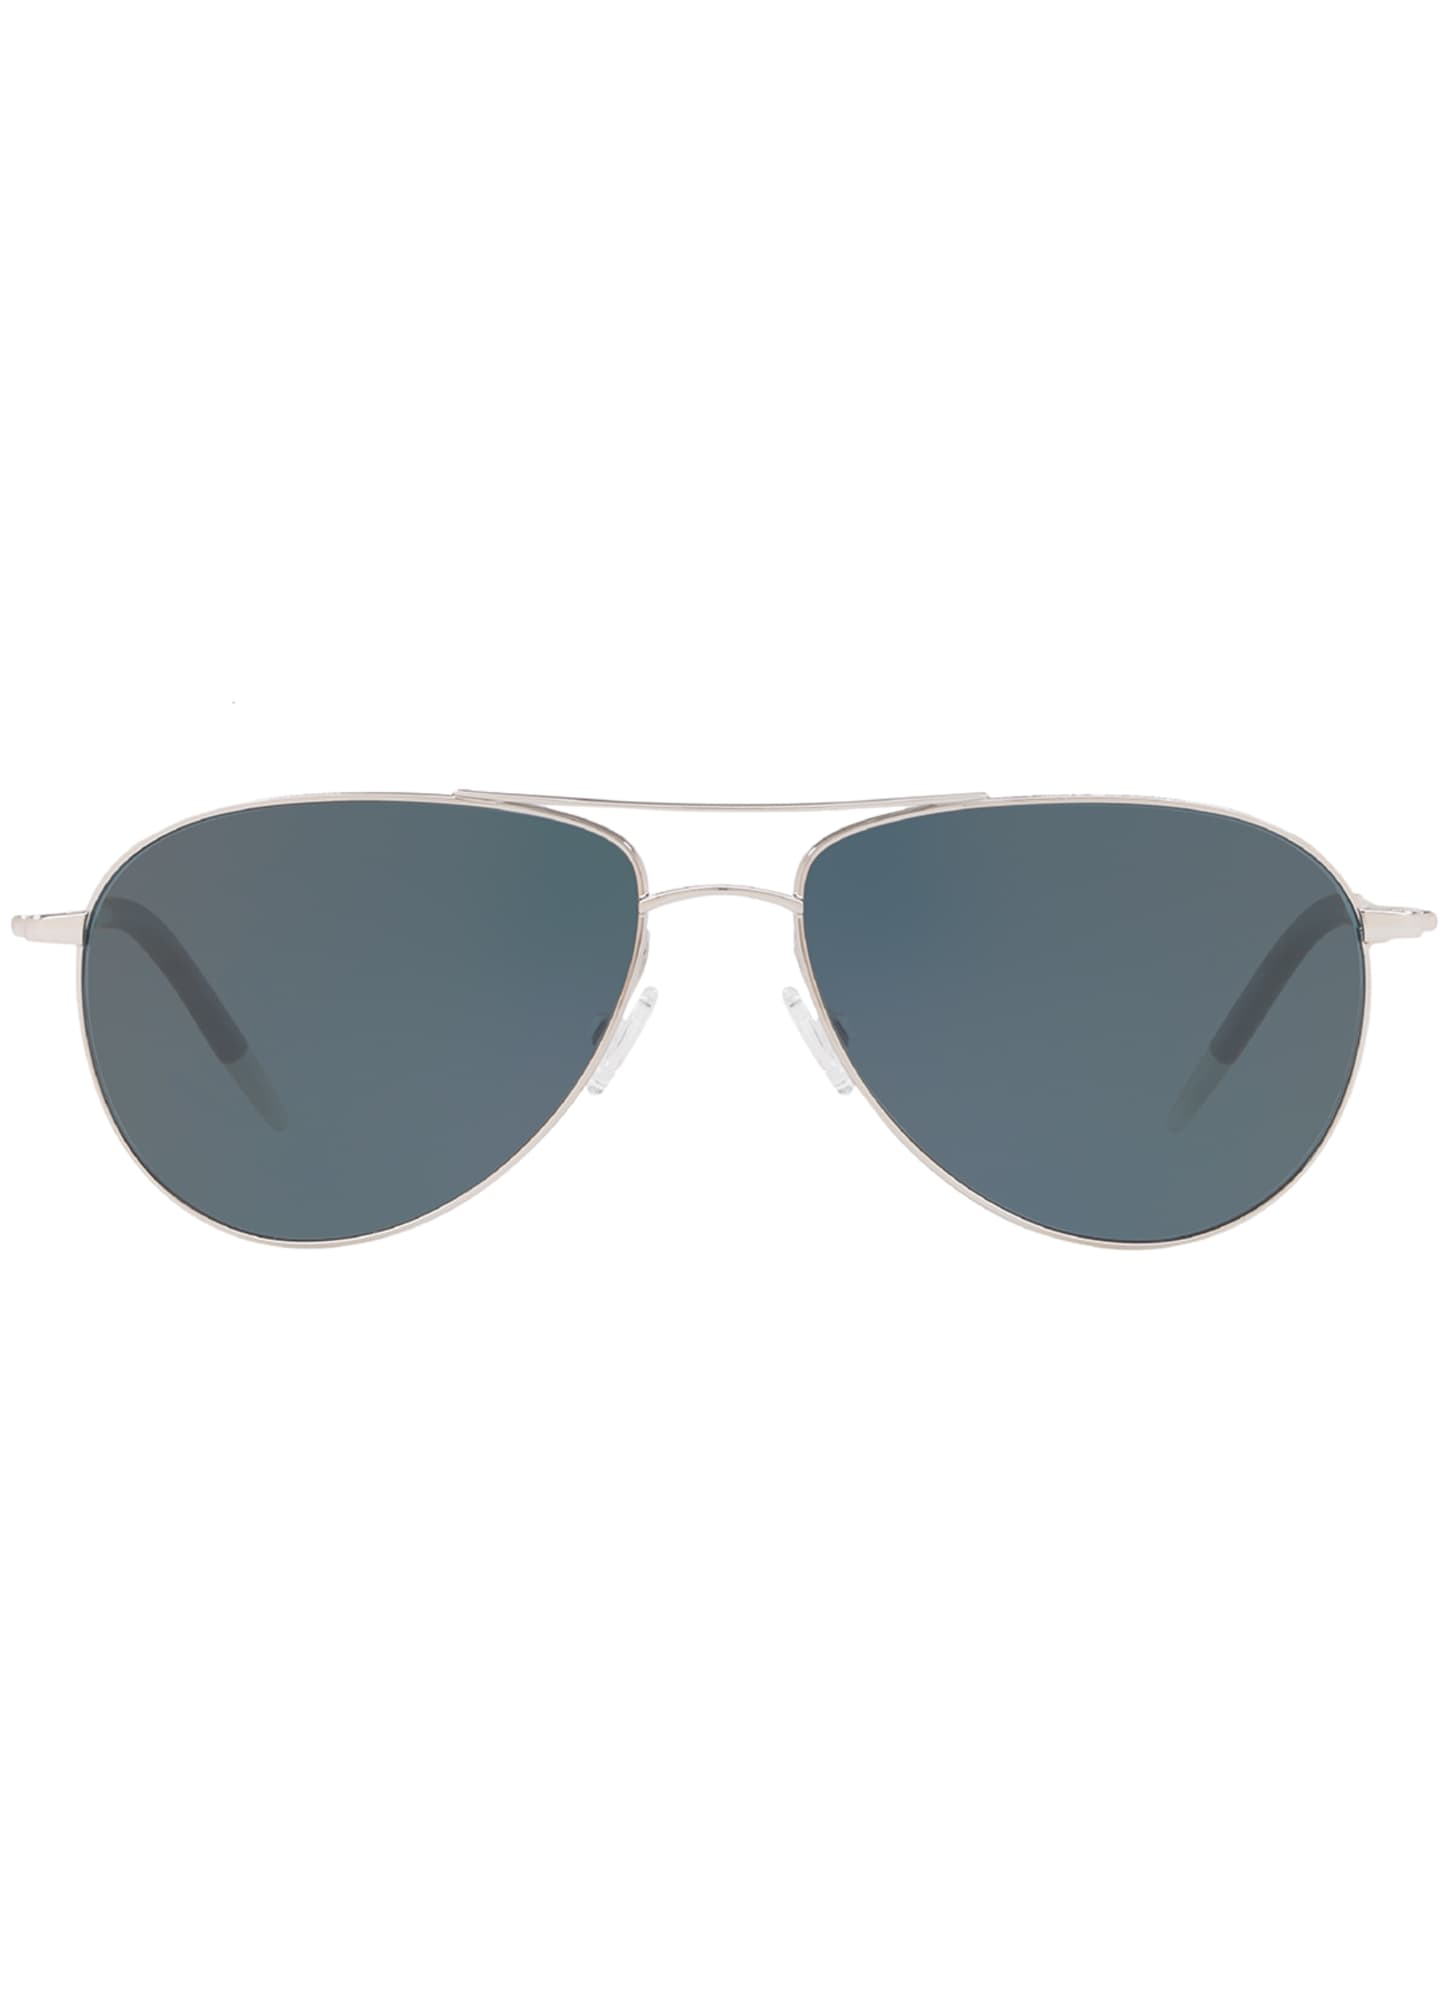 Image 2 of 2: Men's Benedict 59 Aviator Sunglasses - Polarized Lenses